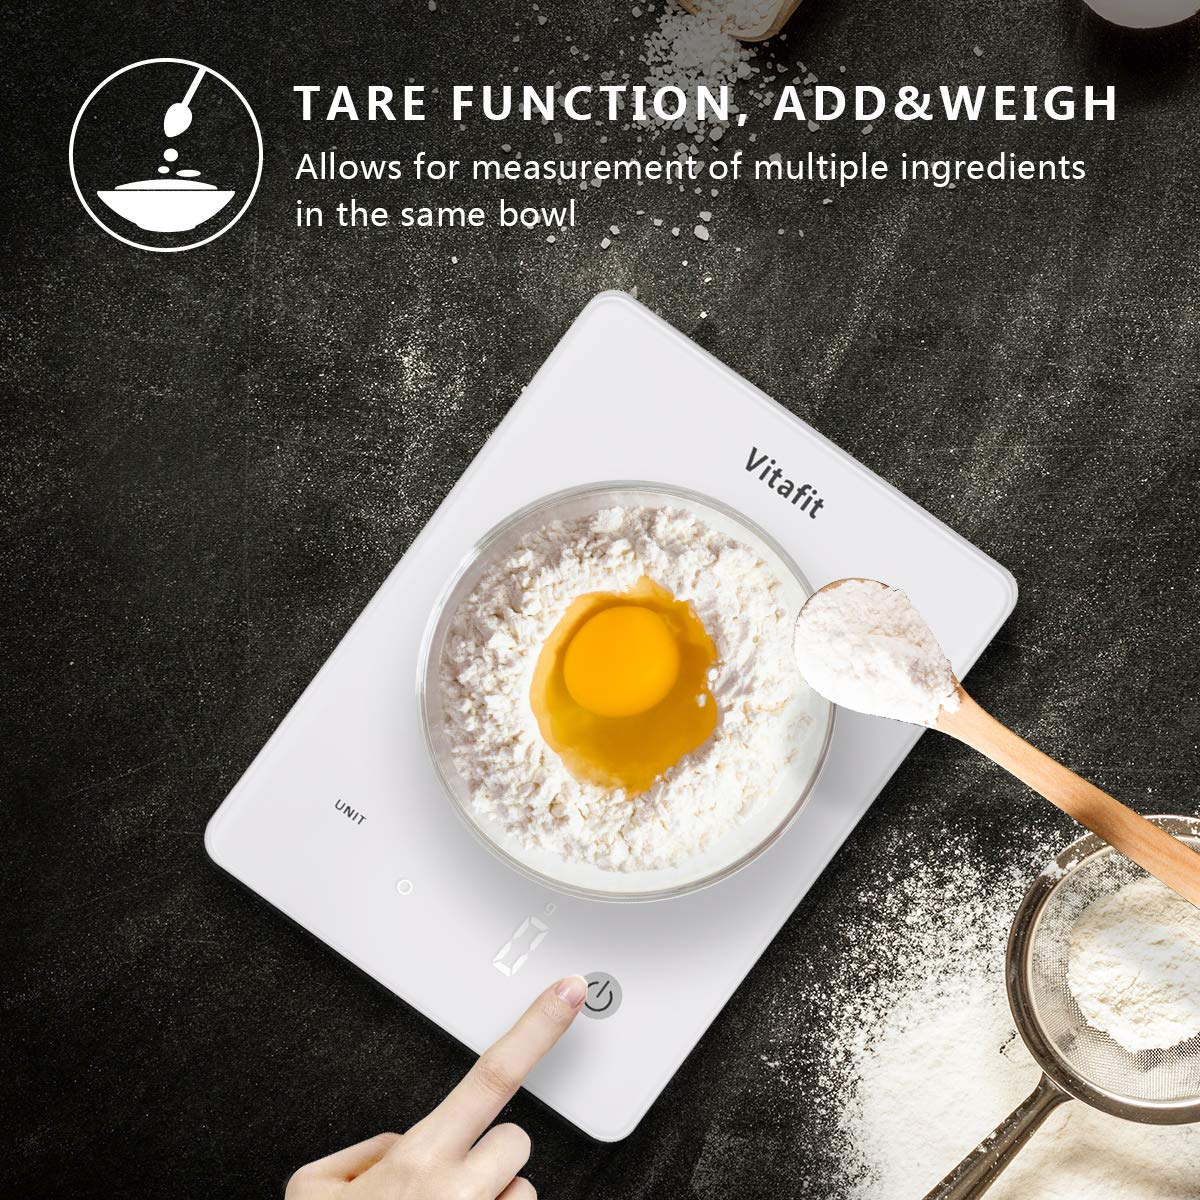 Vitafit 10kg Digital Food Kitchen Scales,Electronic Weighing Cooking Scale with Tempered Glass Platform and Bright LED Display,Tare Function,Ultra Slim Design,White